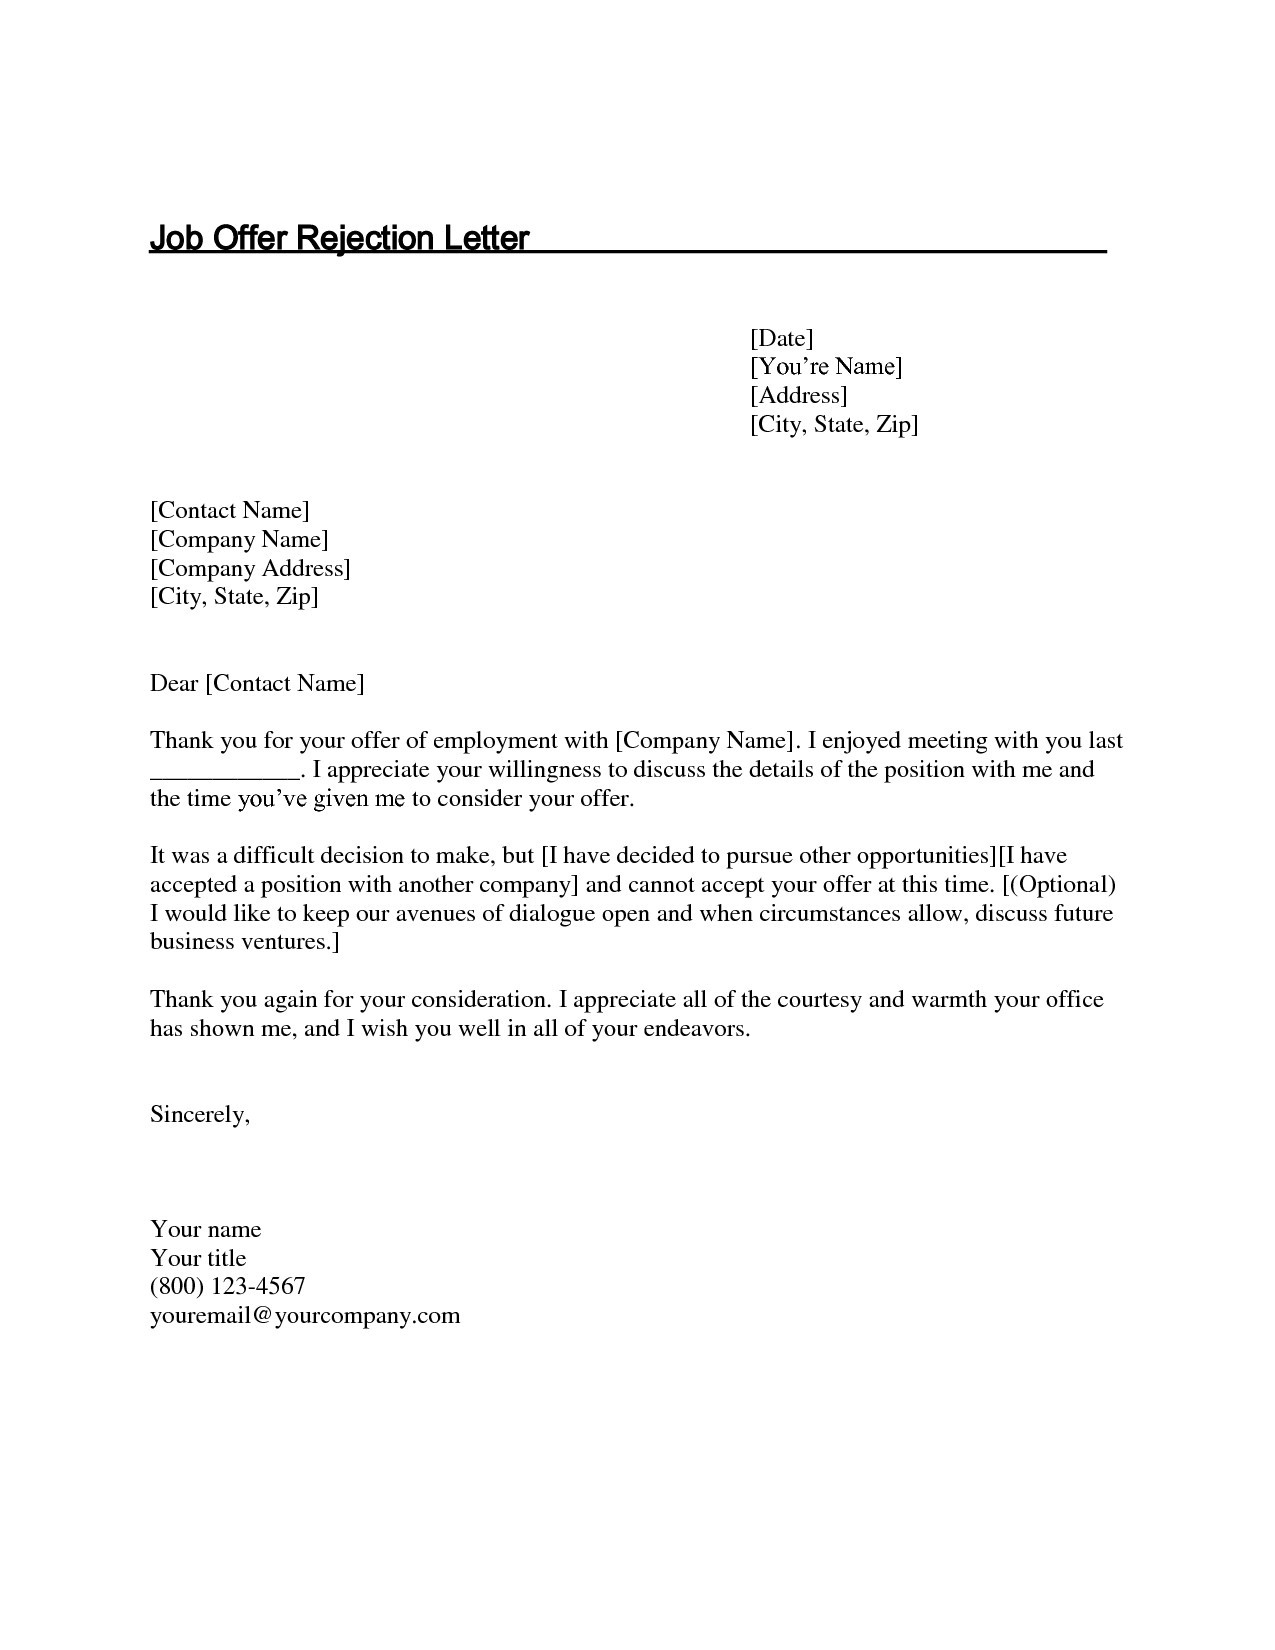 job offer decline letter template examples letter templates